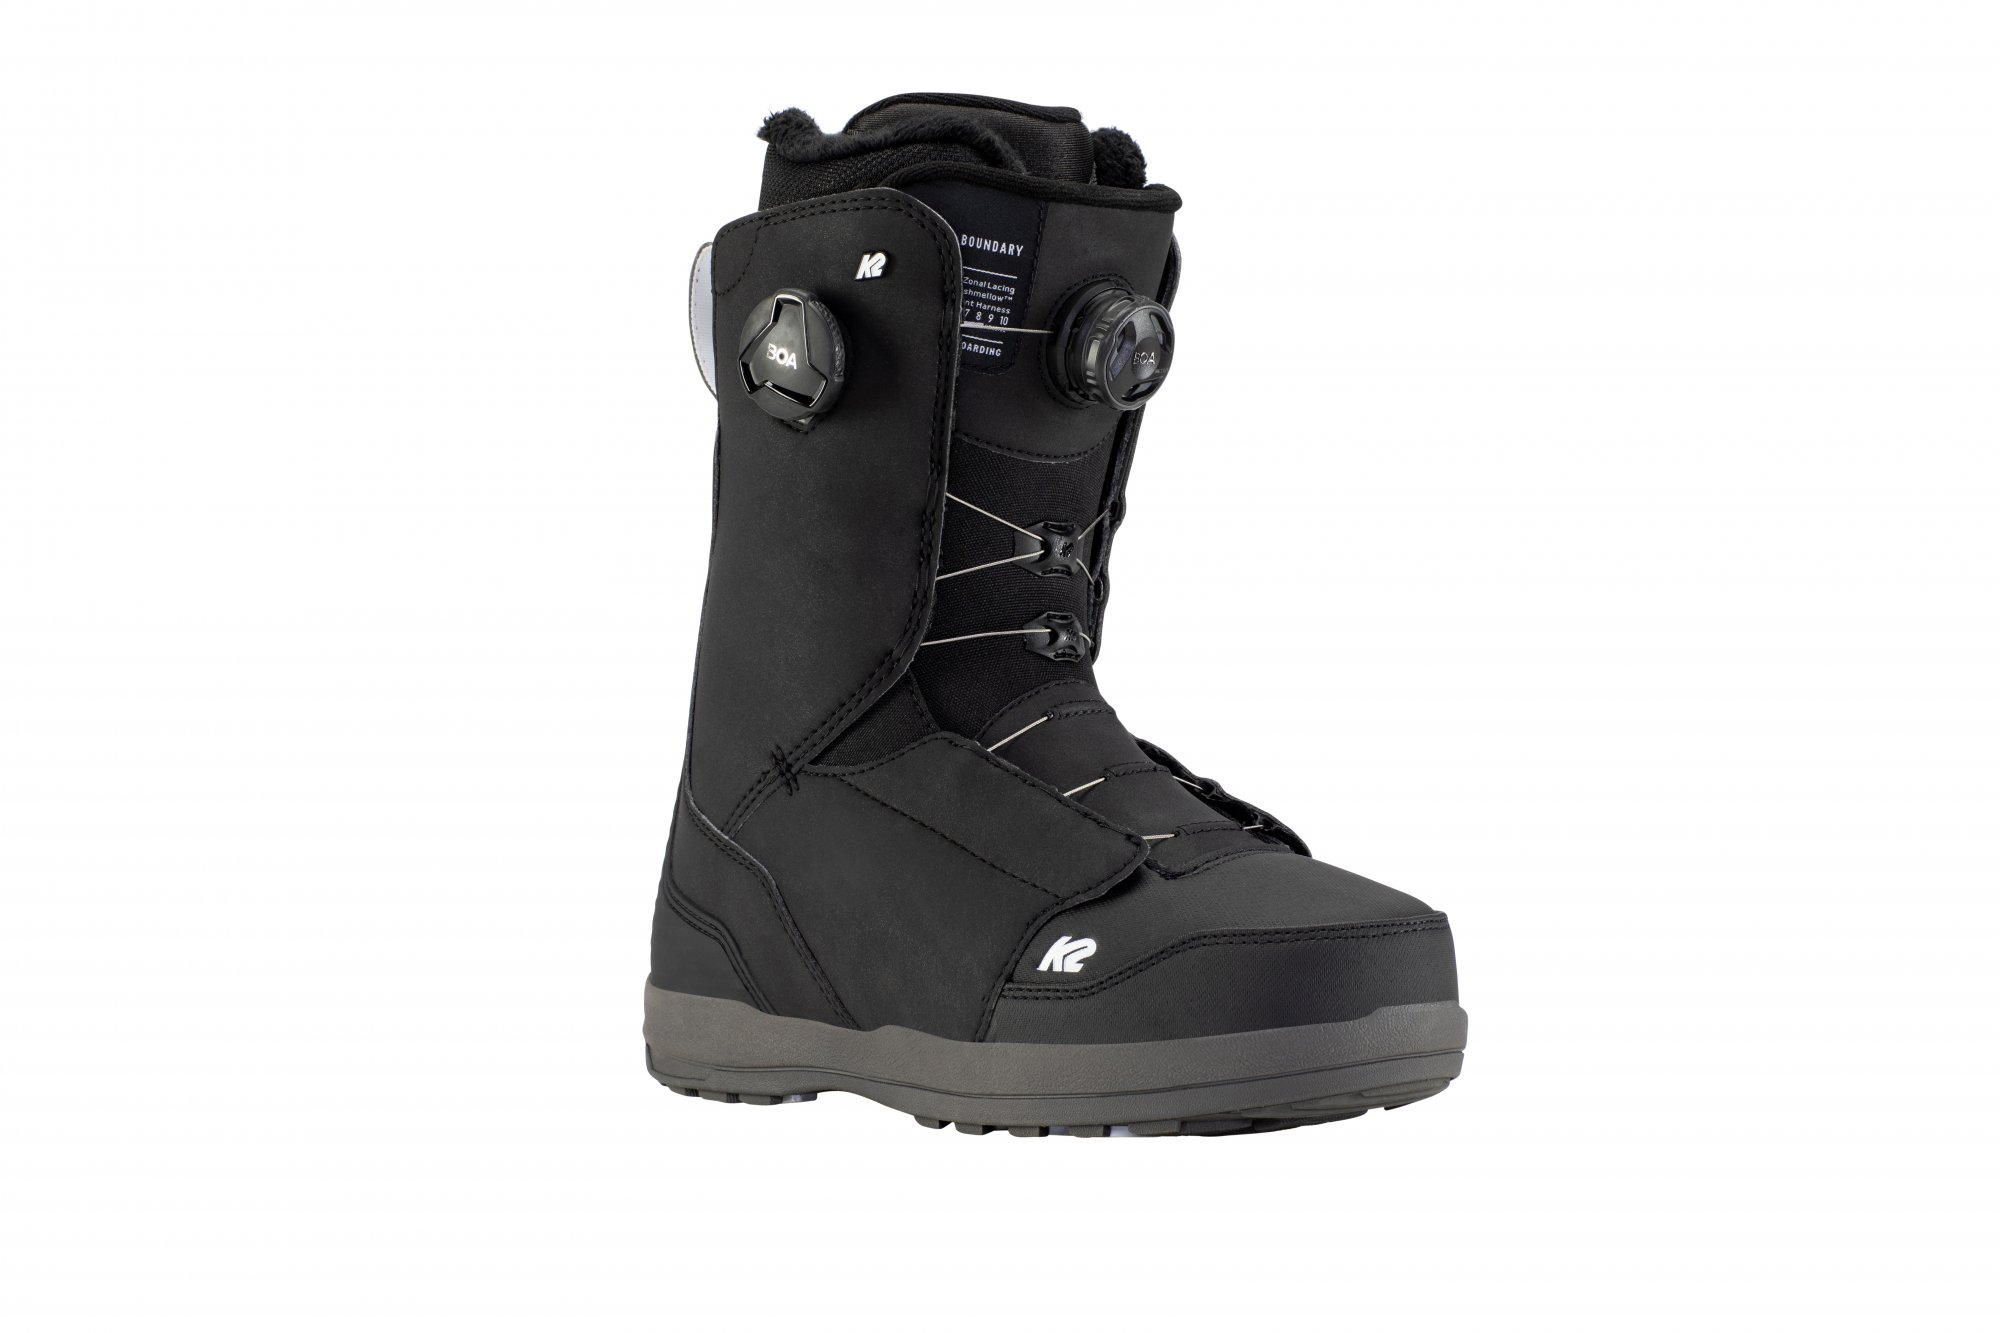 2021 K2 Boundary Men's Snowboard Boots